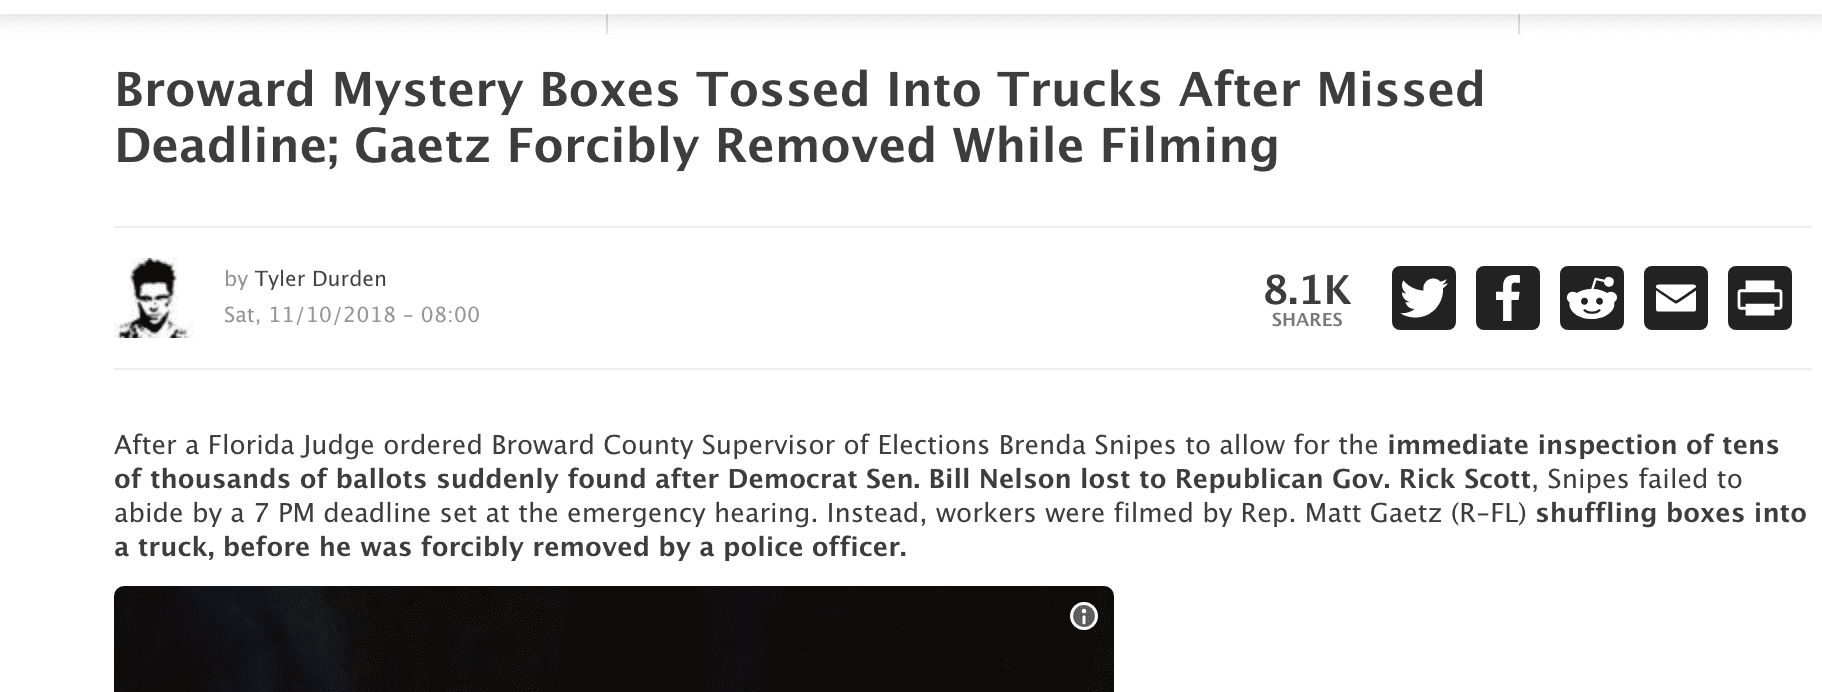 Broward mystery boxes tossed into trucks after missed